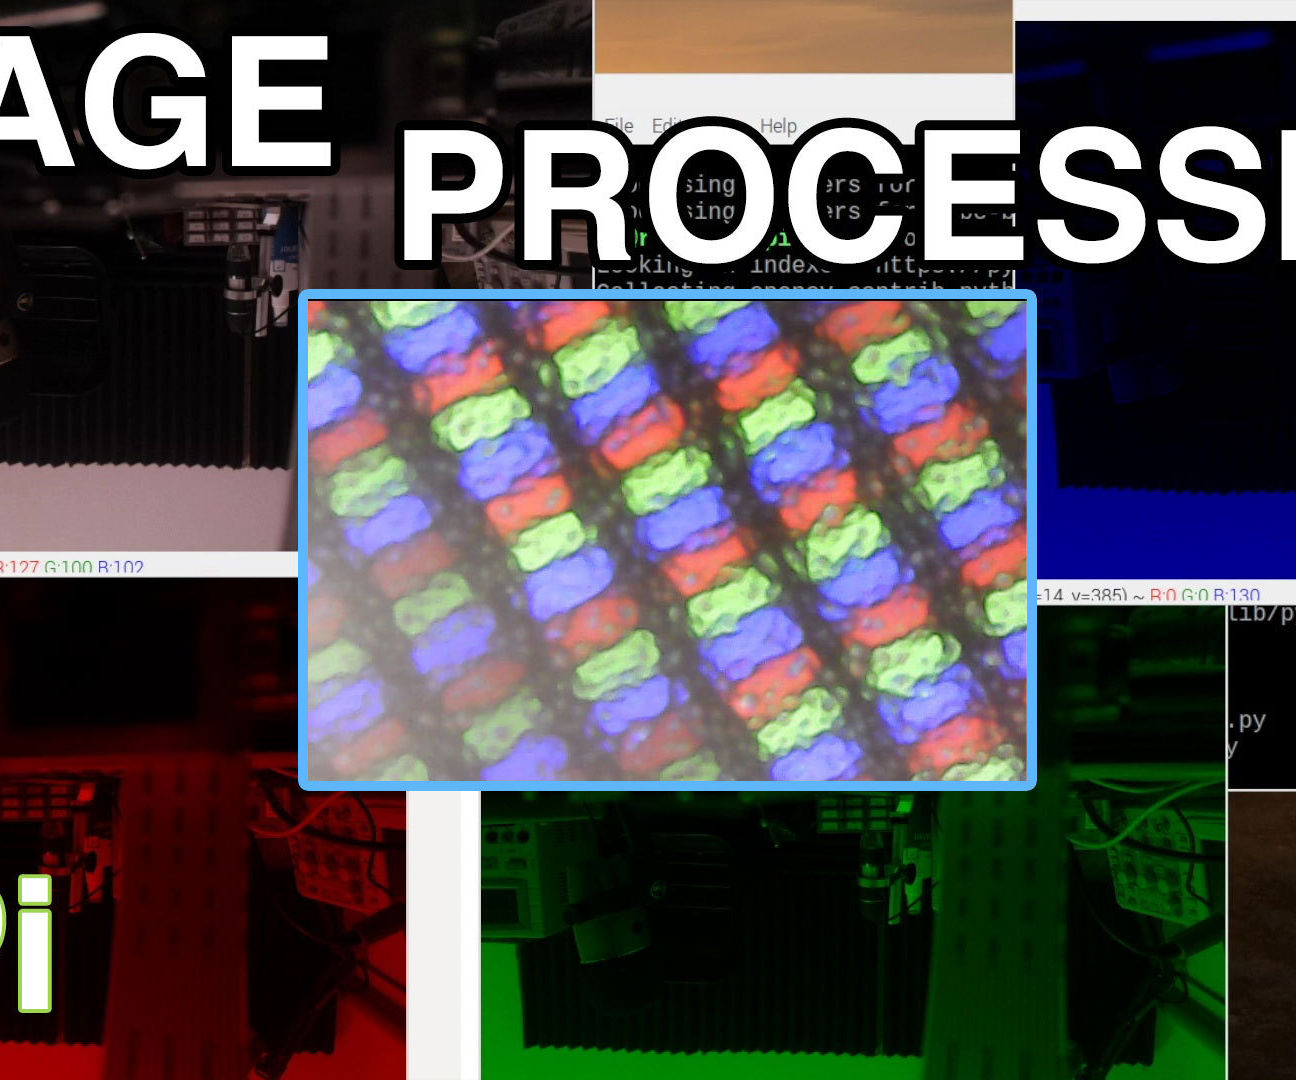 Image Processing With the Raspberry Pi : Installing OpenCV & Image Colour Separation